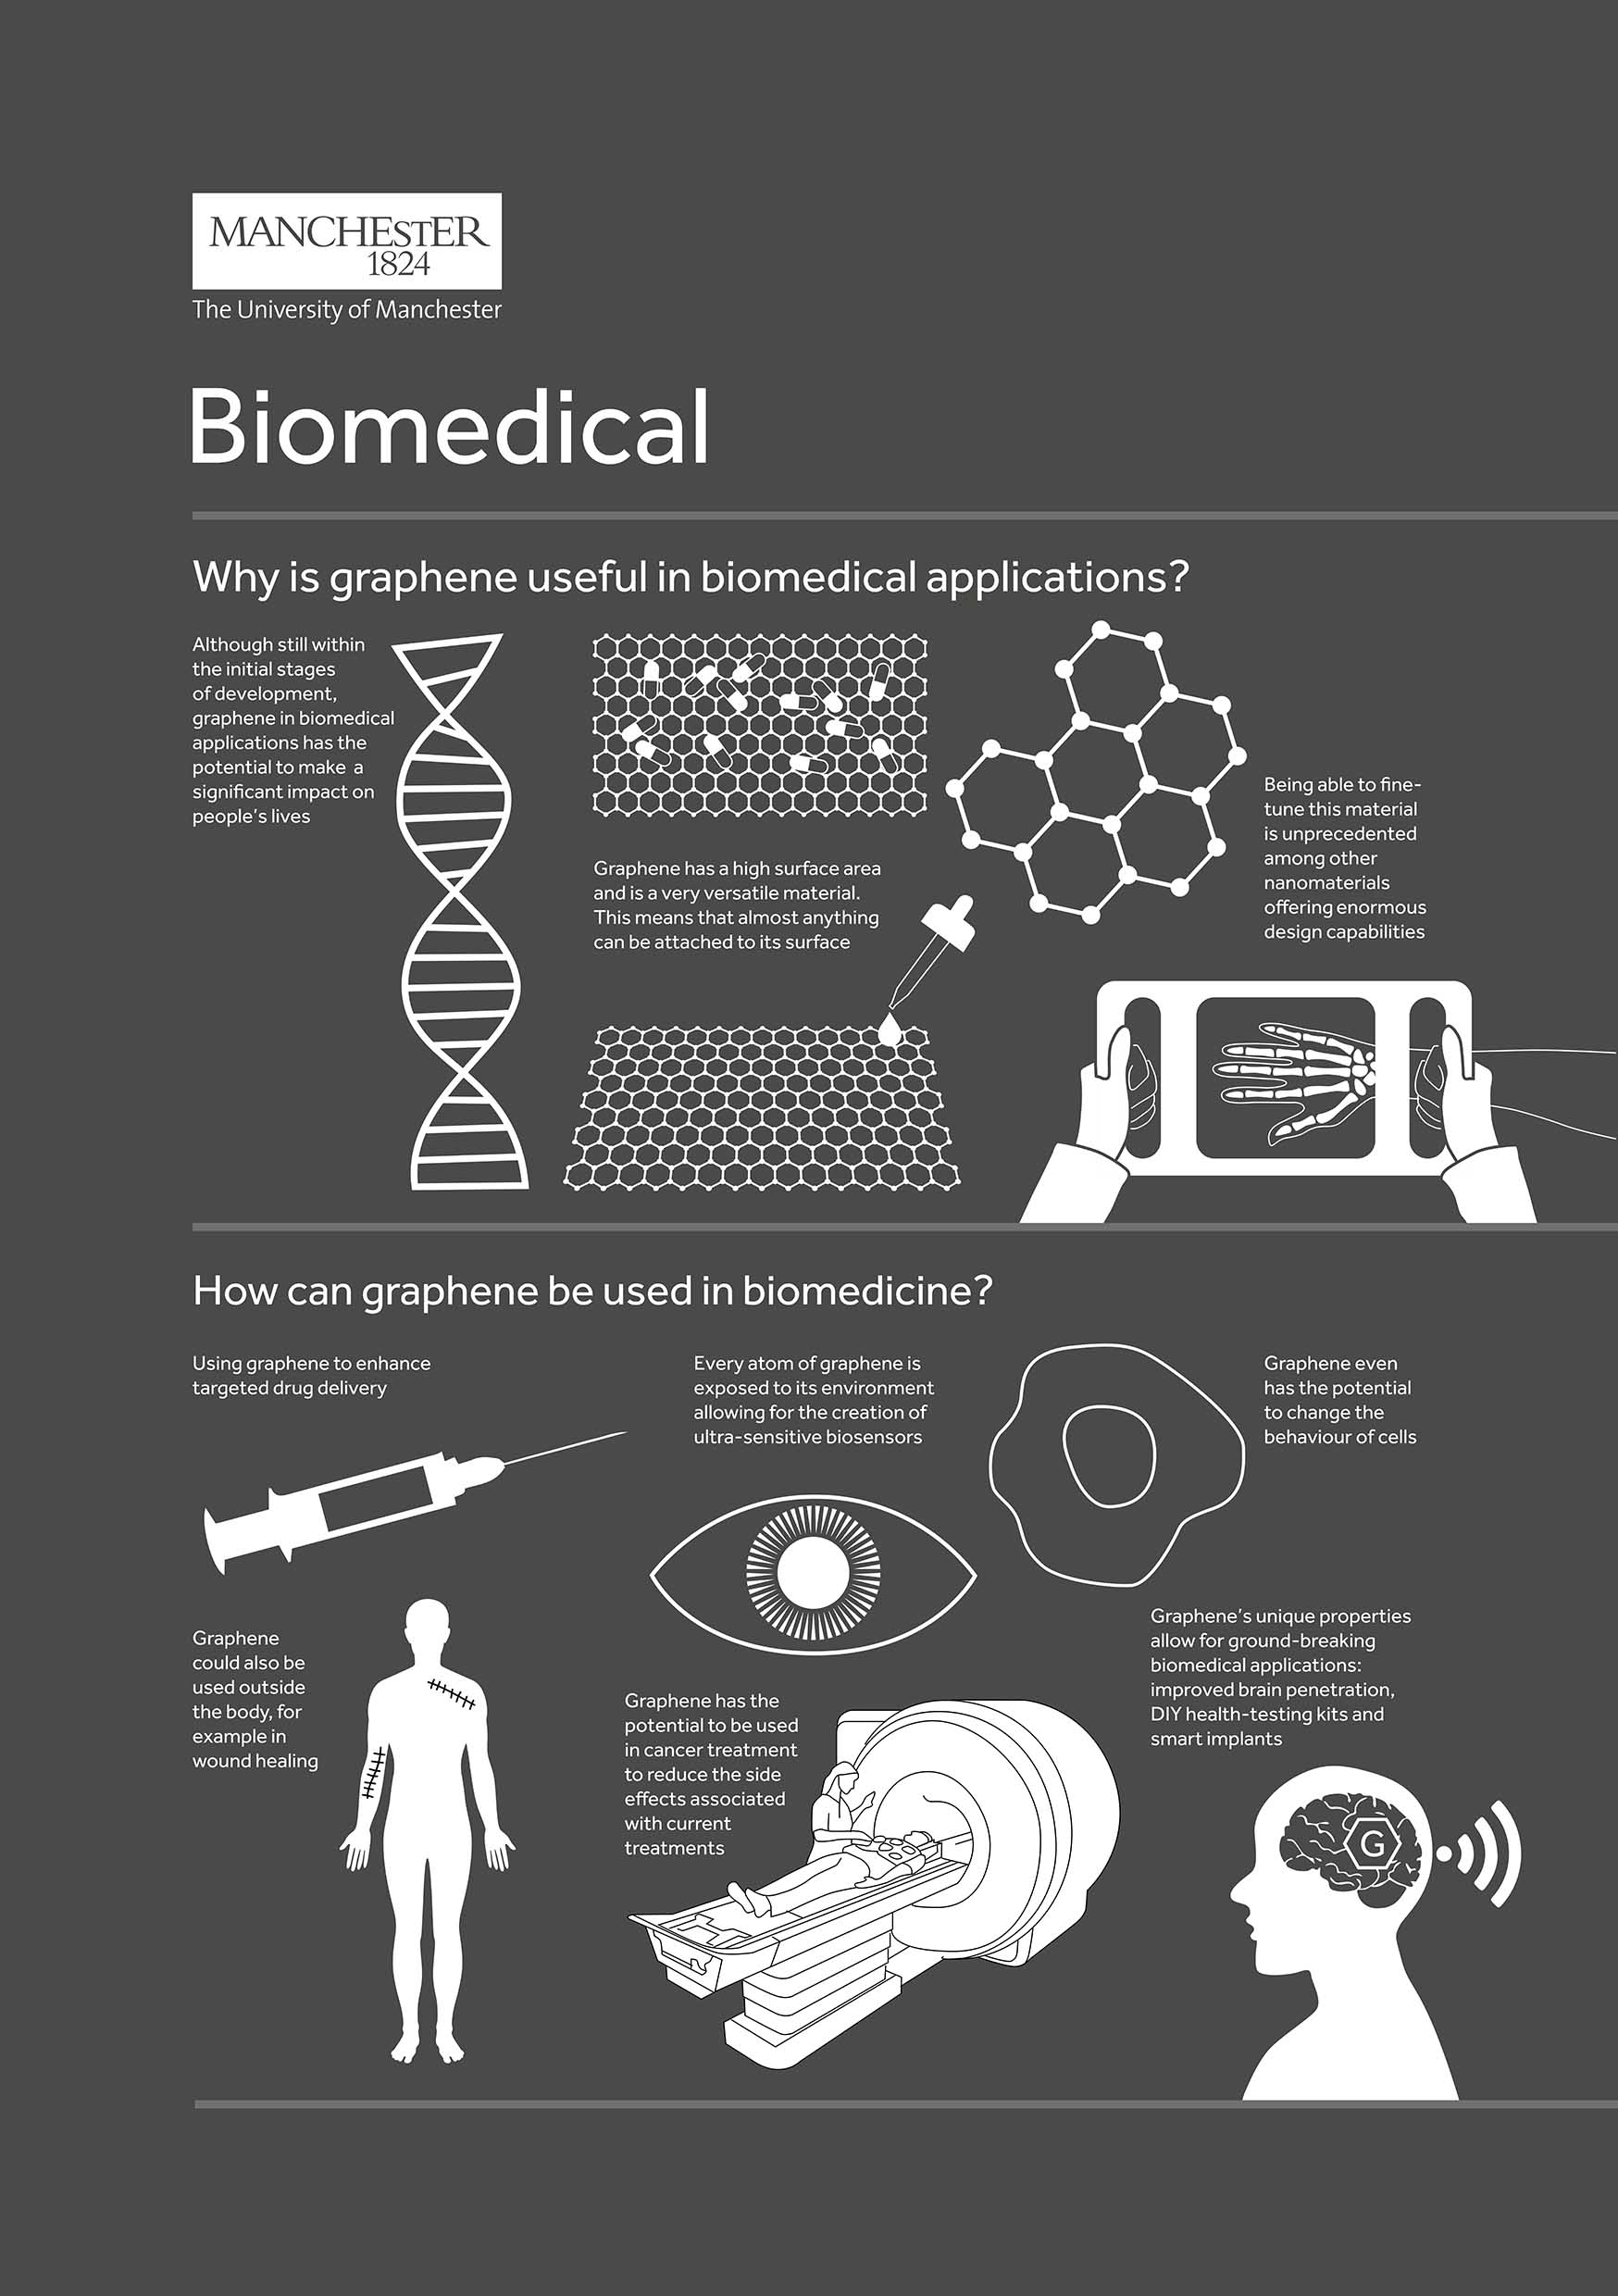 Biomedical - Graphene - The University of Manchester